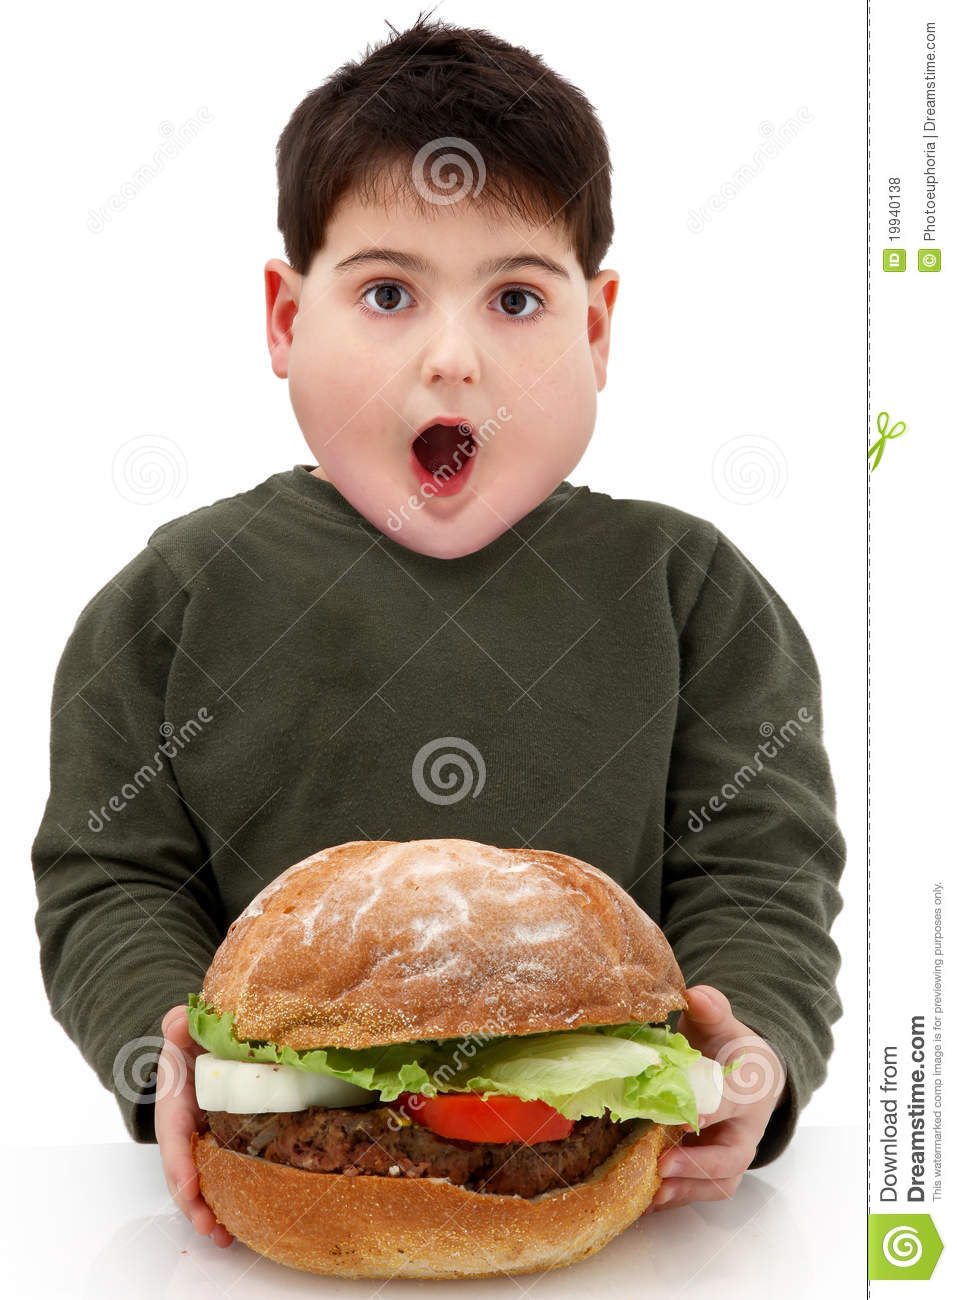 Obese Hungry Boy with Giant Burger